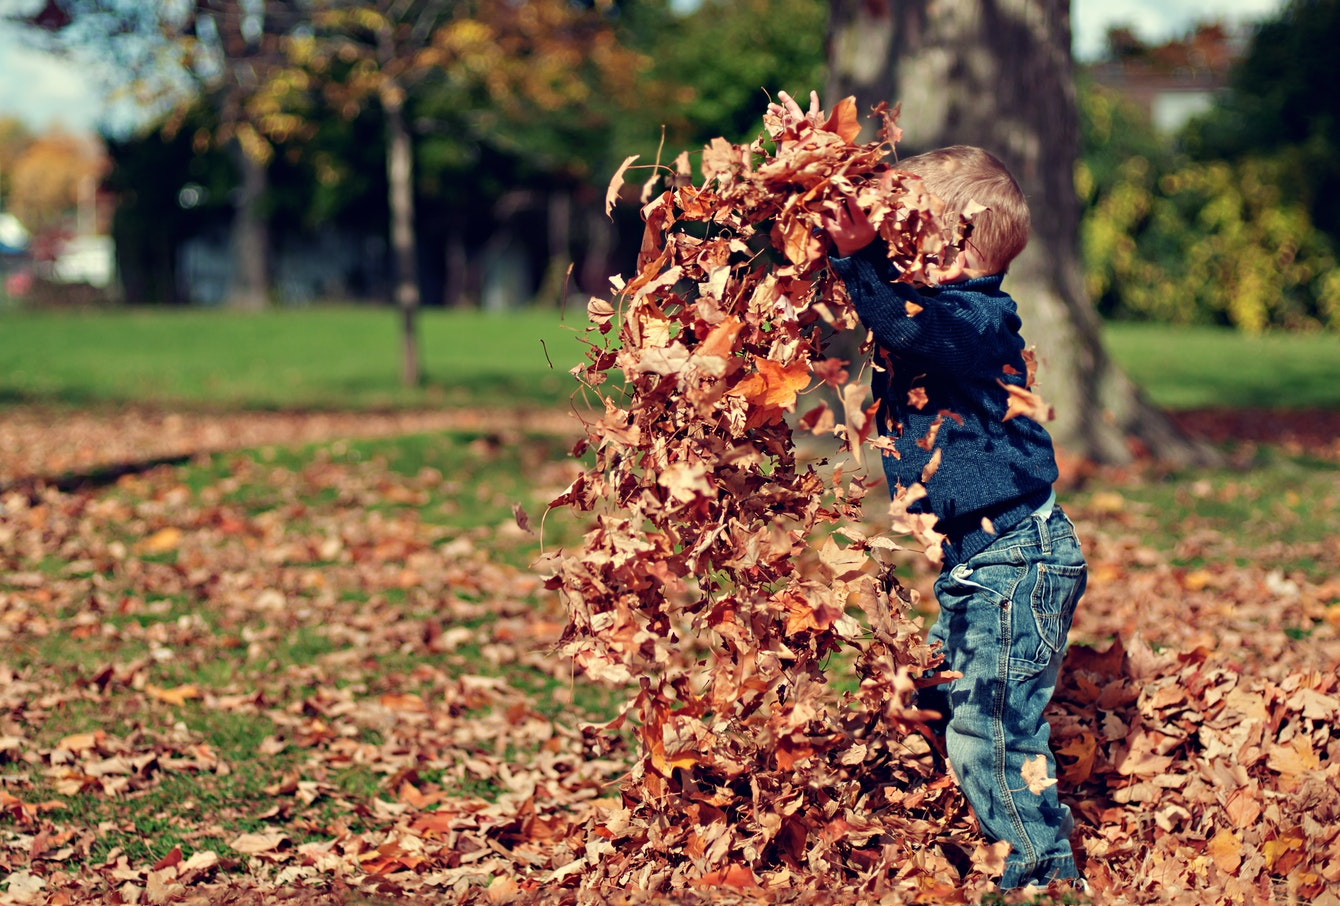 Child Playing With Leaves | Things To Do in Blackpool